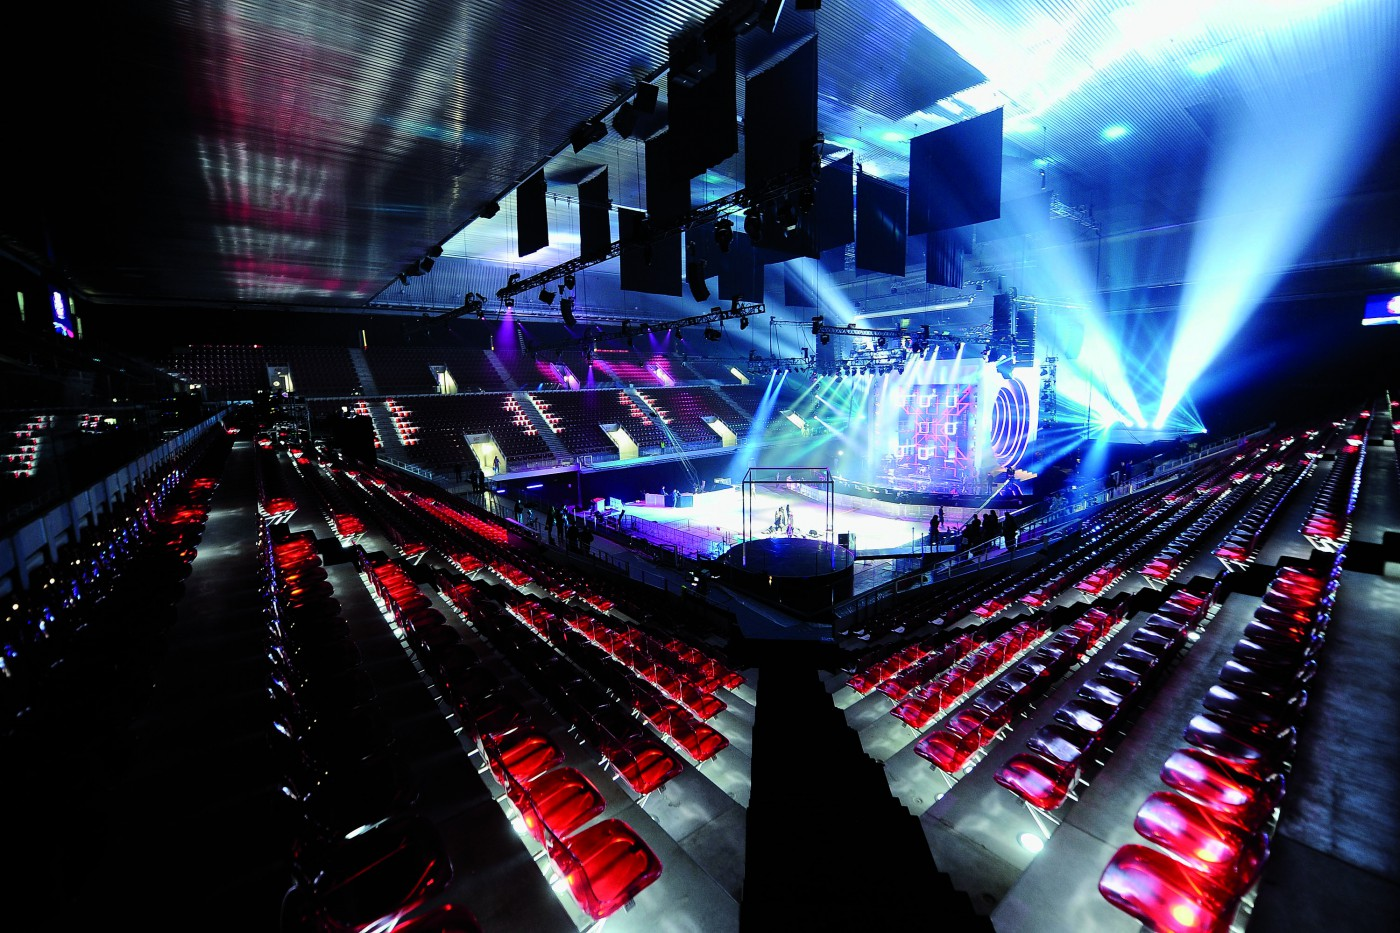 MADRID, SPAIN - NOVEMBER 07:  A general view of atmosphere before the MTV Europe Awards 2010 at the La Caja Magica on November 7, 2010 in Madrid, Spain.  (Photo by Ian Gavan/Getty Images)